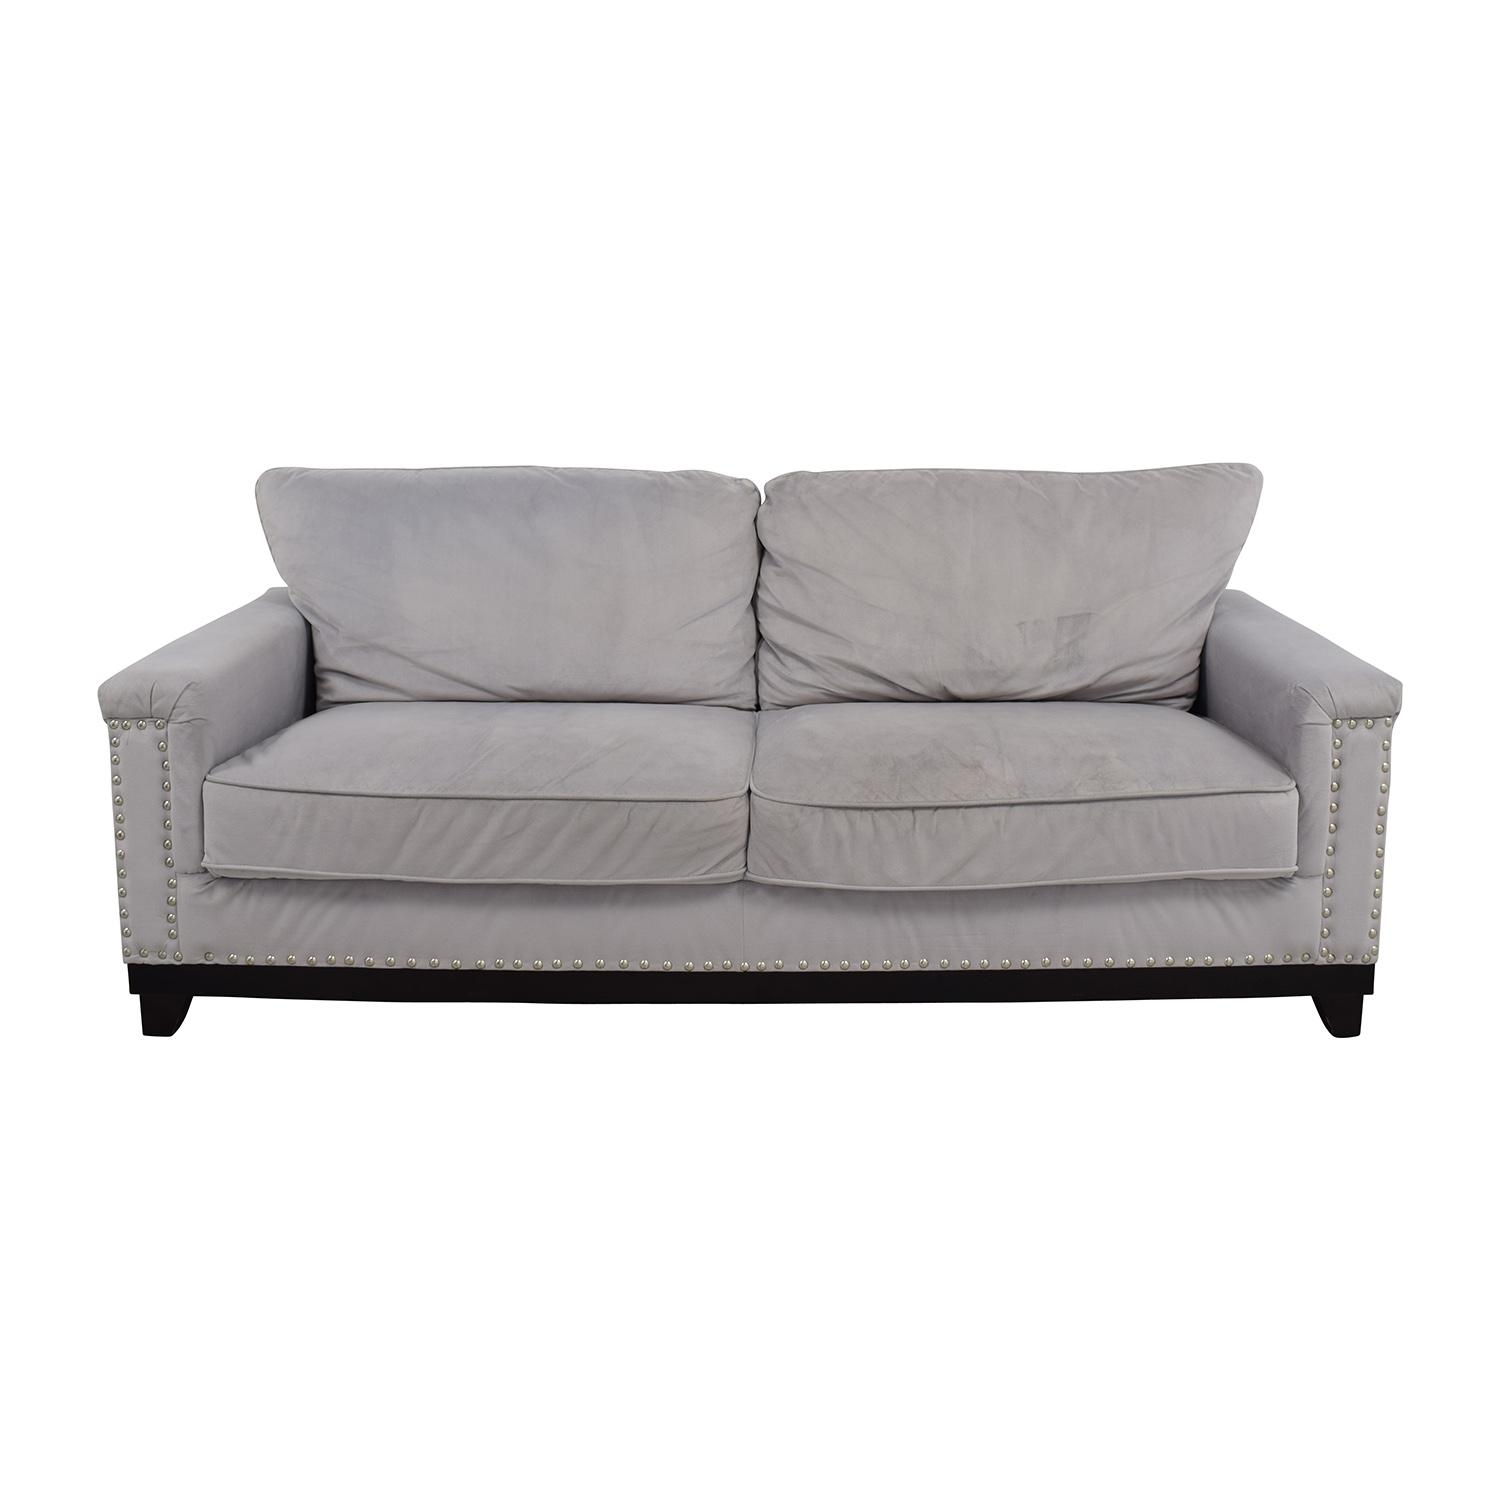 Sofa : Best Classic Sofas For Sale Design Ideas Fresh On Classic With Regard To Classic Sofas For Sale (Image 14 of 20)